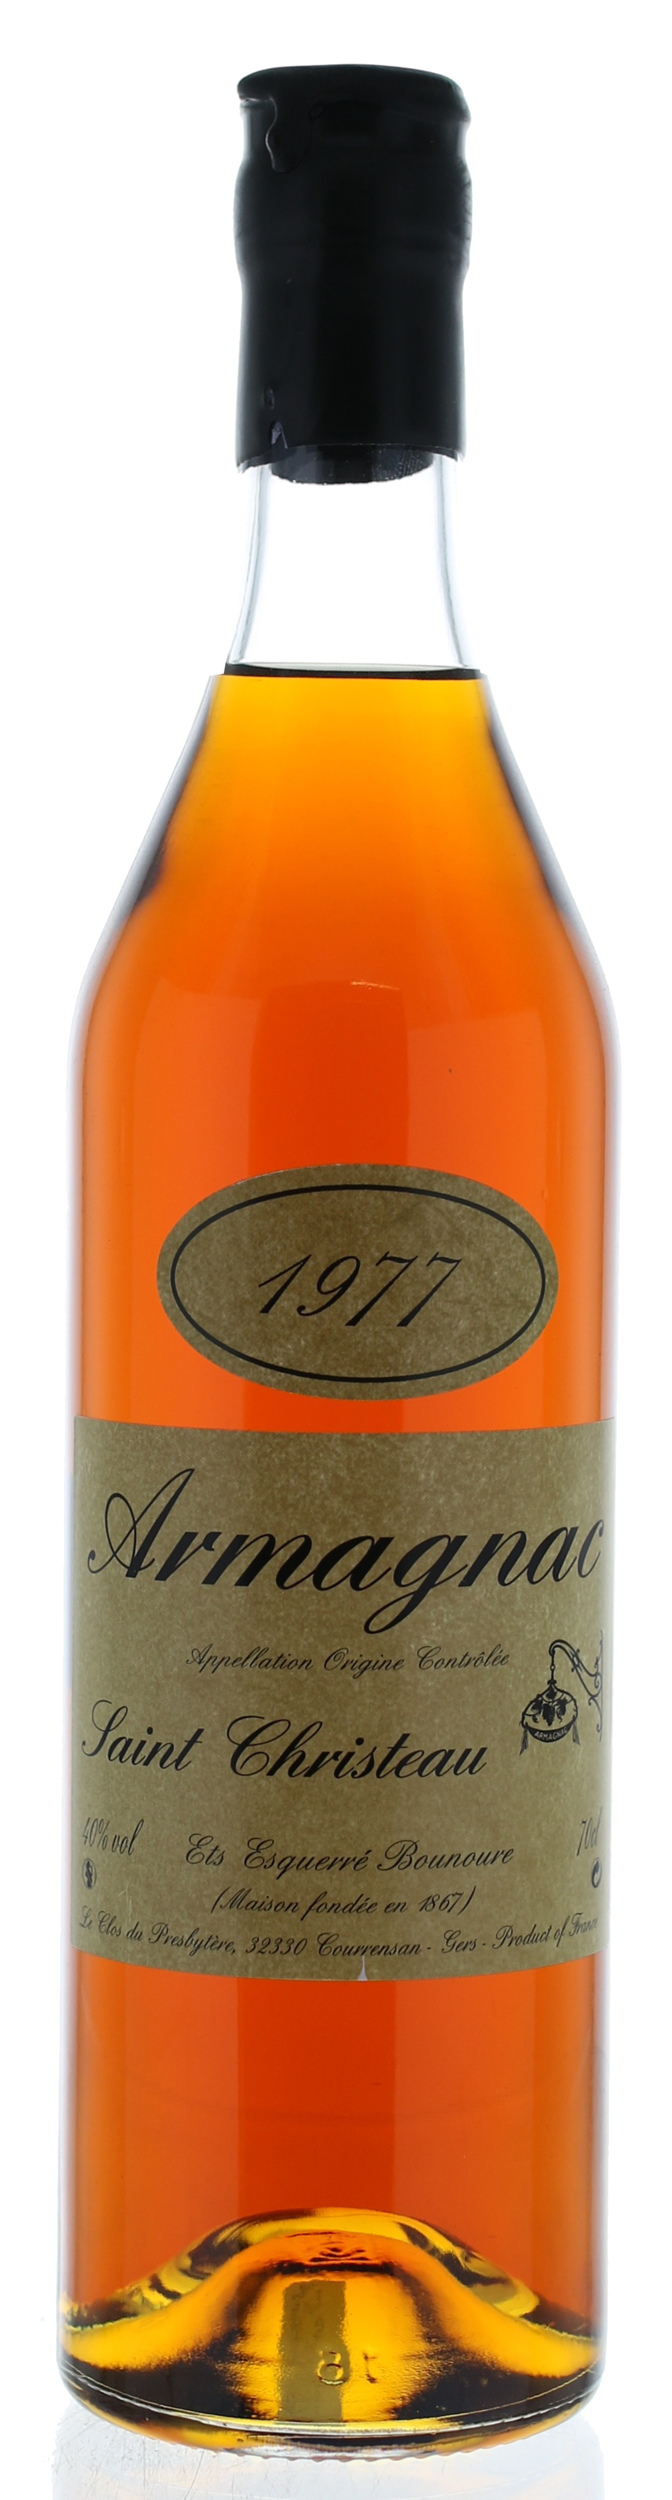 ARMAGNAC - 1977 - Saint-Christeau - 41° - G. Miclo